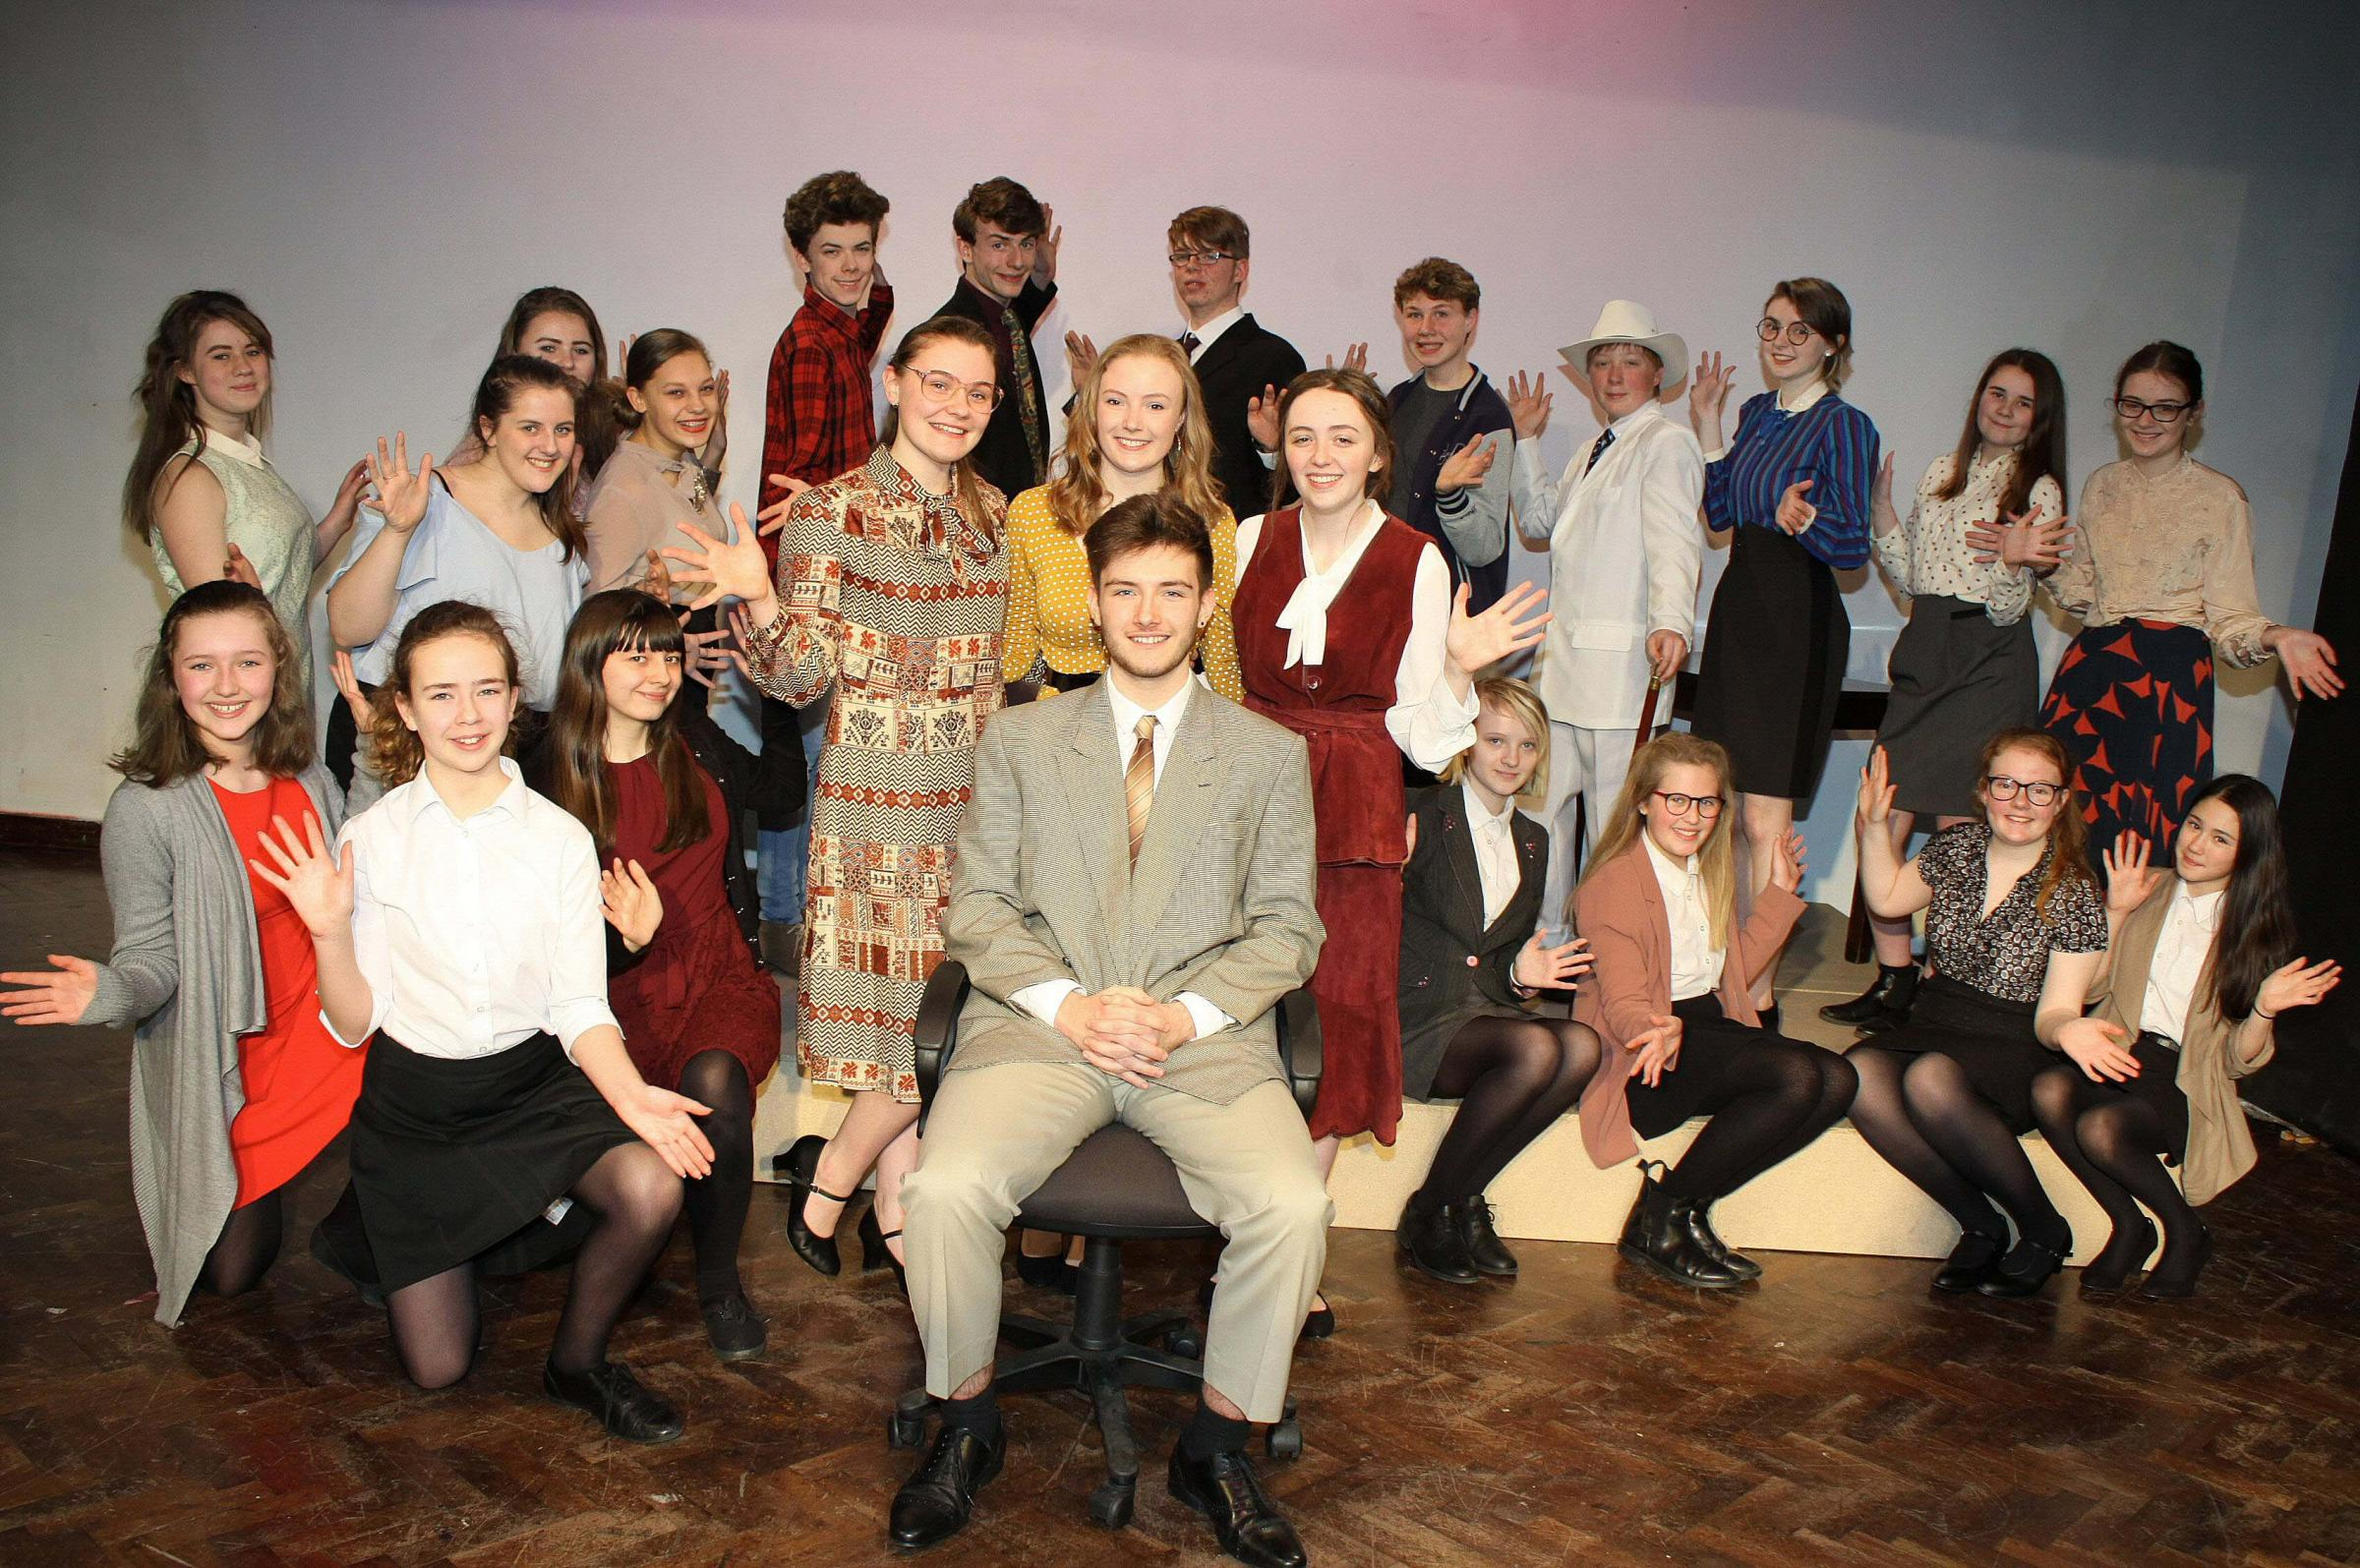 SHOW: Northallerton School and Sixth Form College students bring the iconic 9 to 5 movie to the stage.